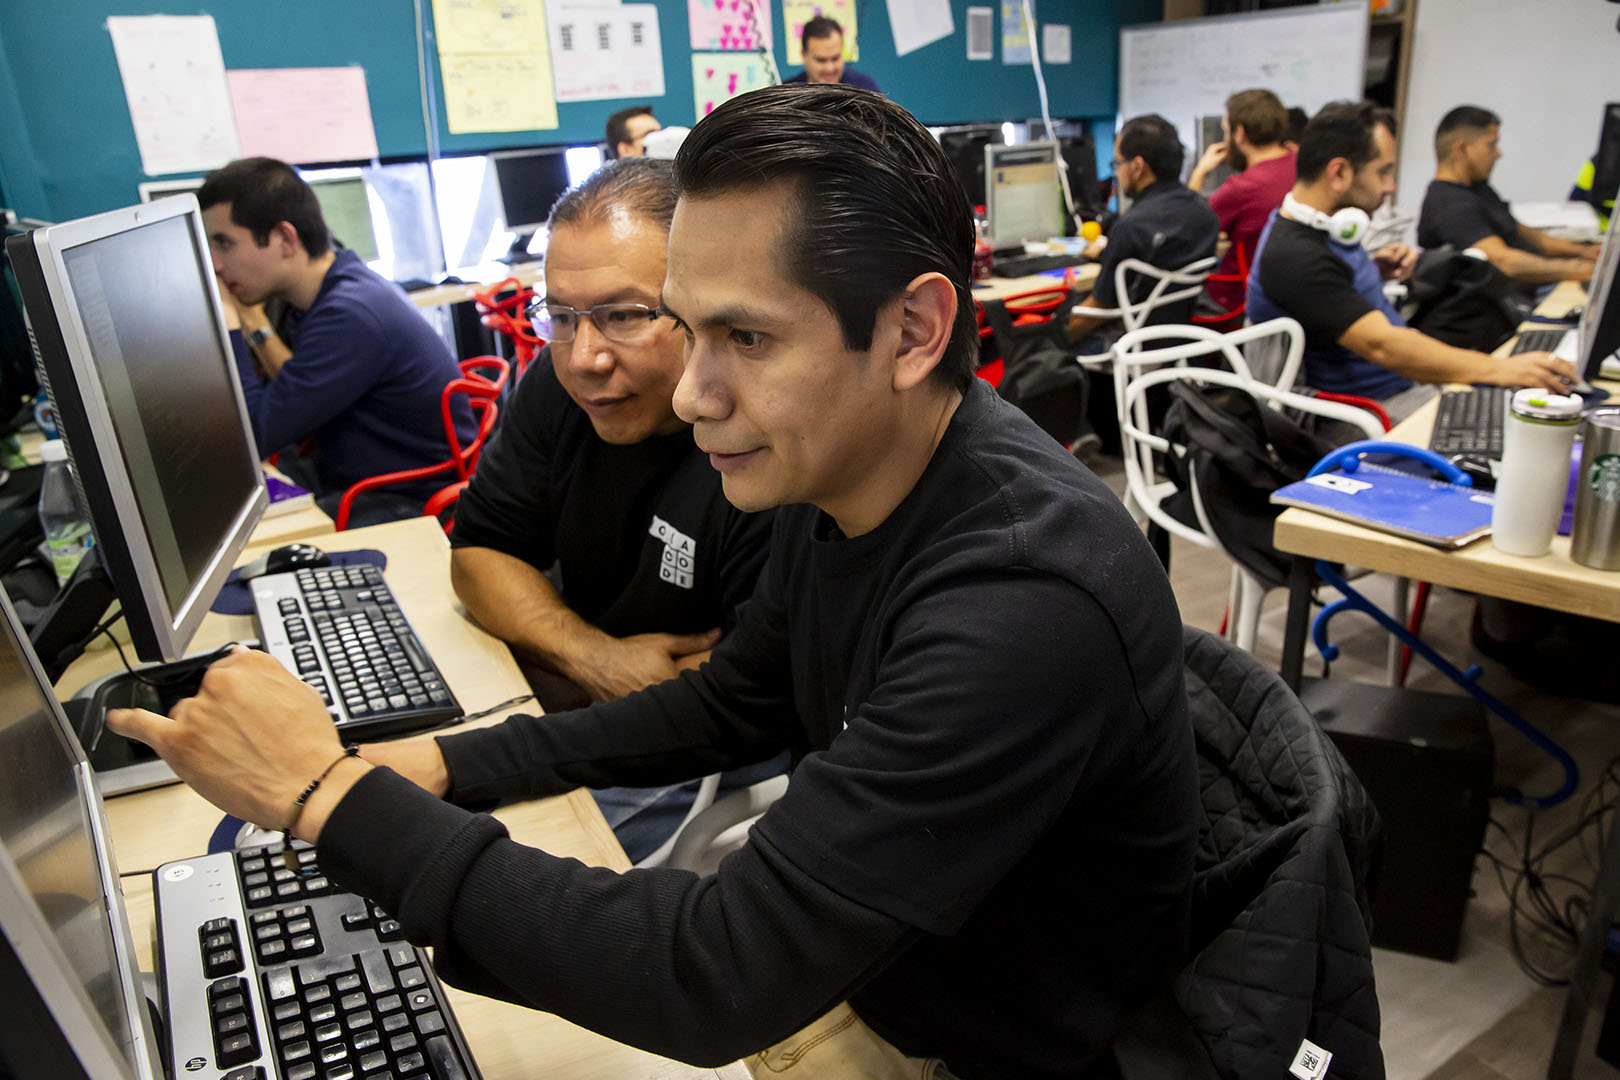 Orlando Mendoza works during classes of Hola Code, a nonprofit that offers a software training for returnees and refugees in Mexico. Mendoza recently graduated from the program and secured a job.